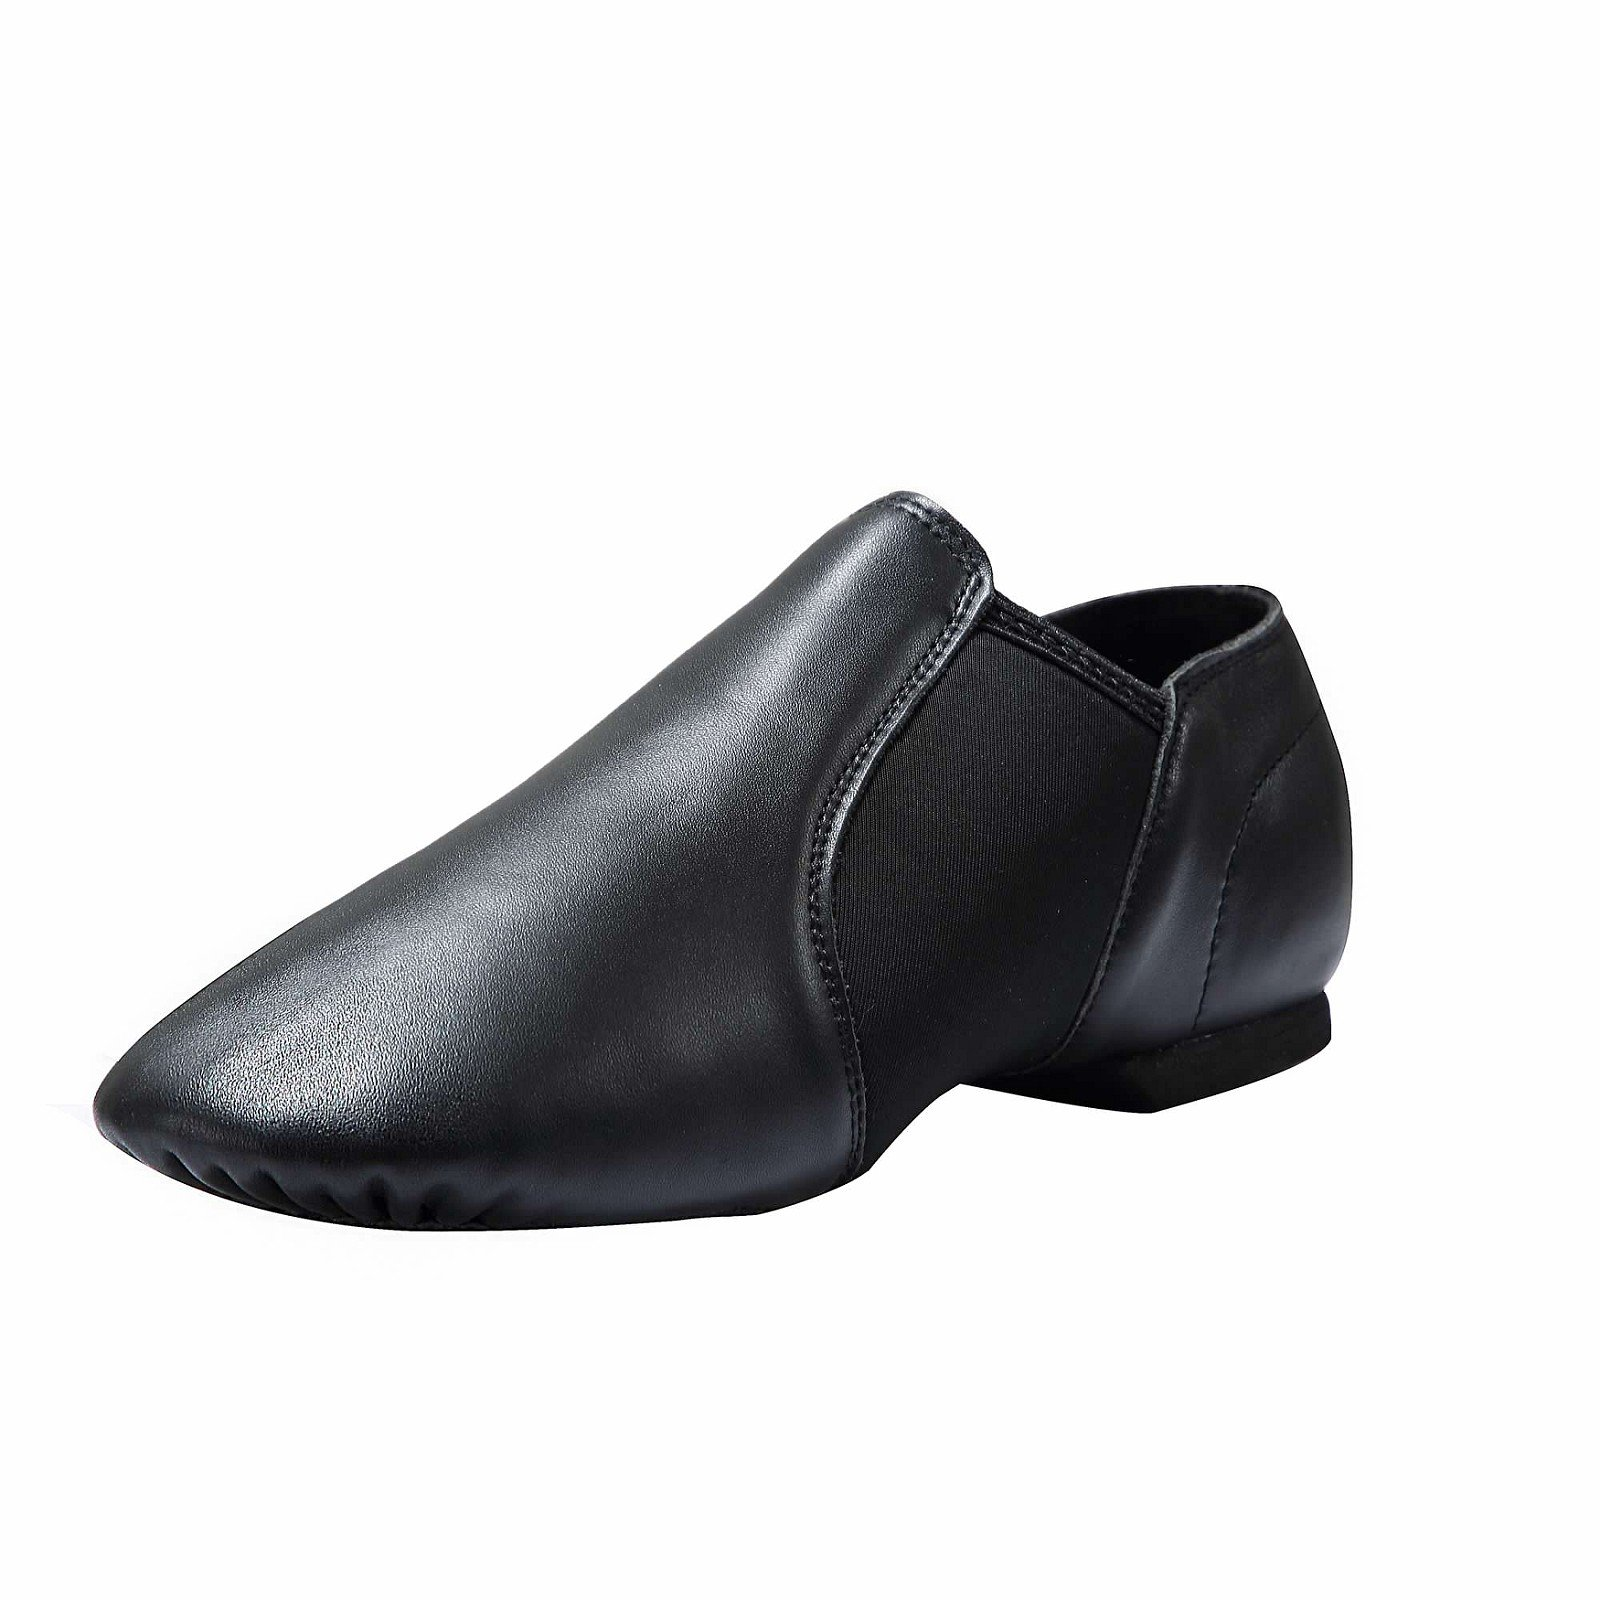 Dynadans Women's Leather Upper Slip-on Jazz Shoe Black 8.5M